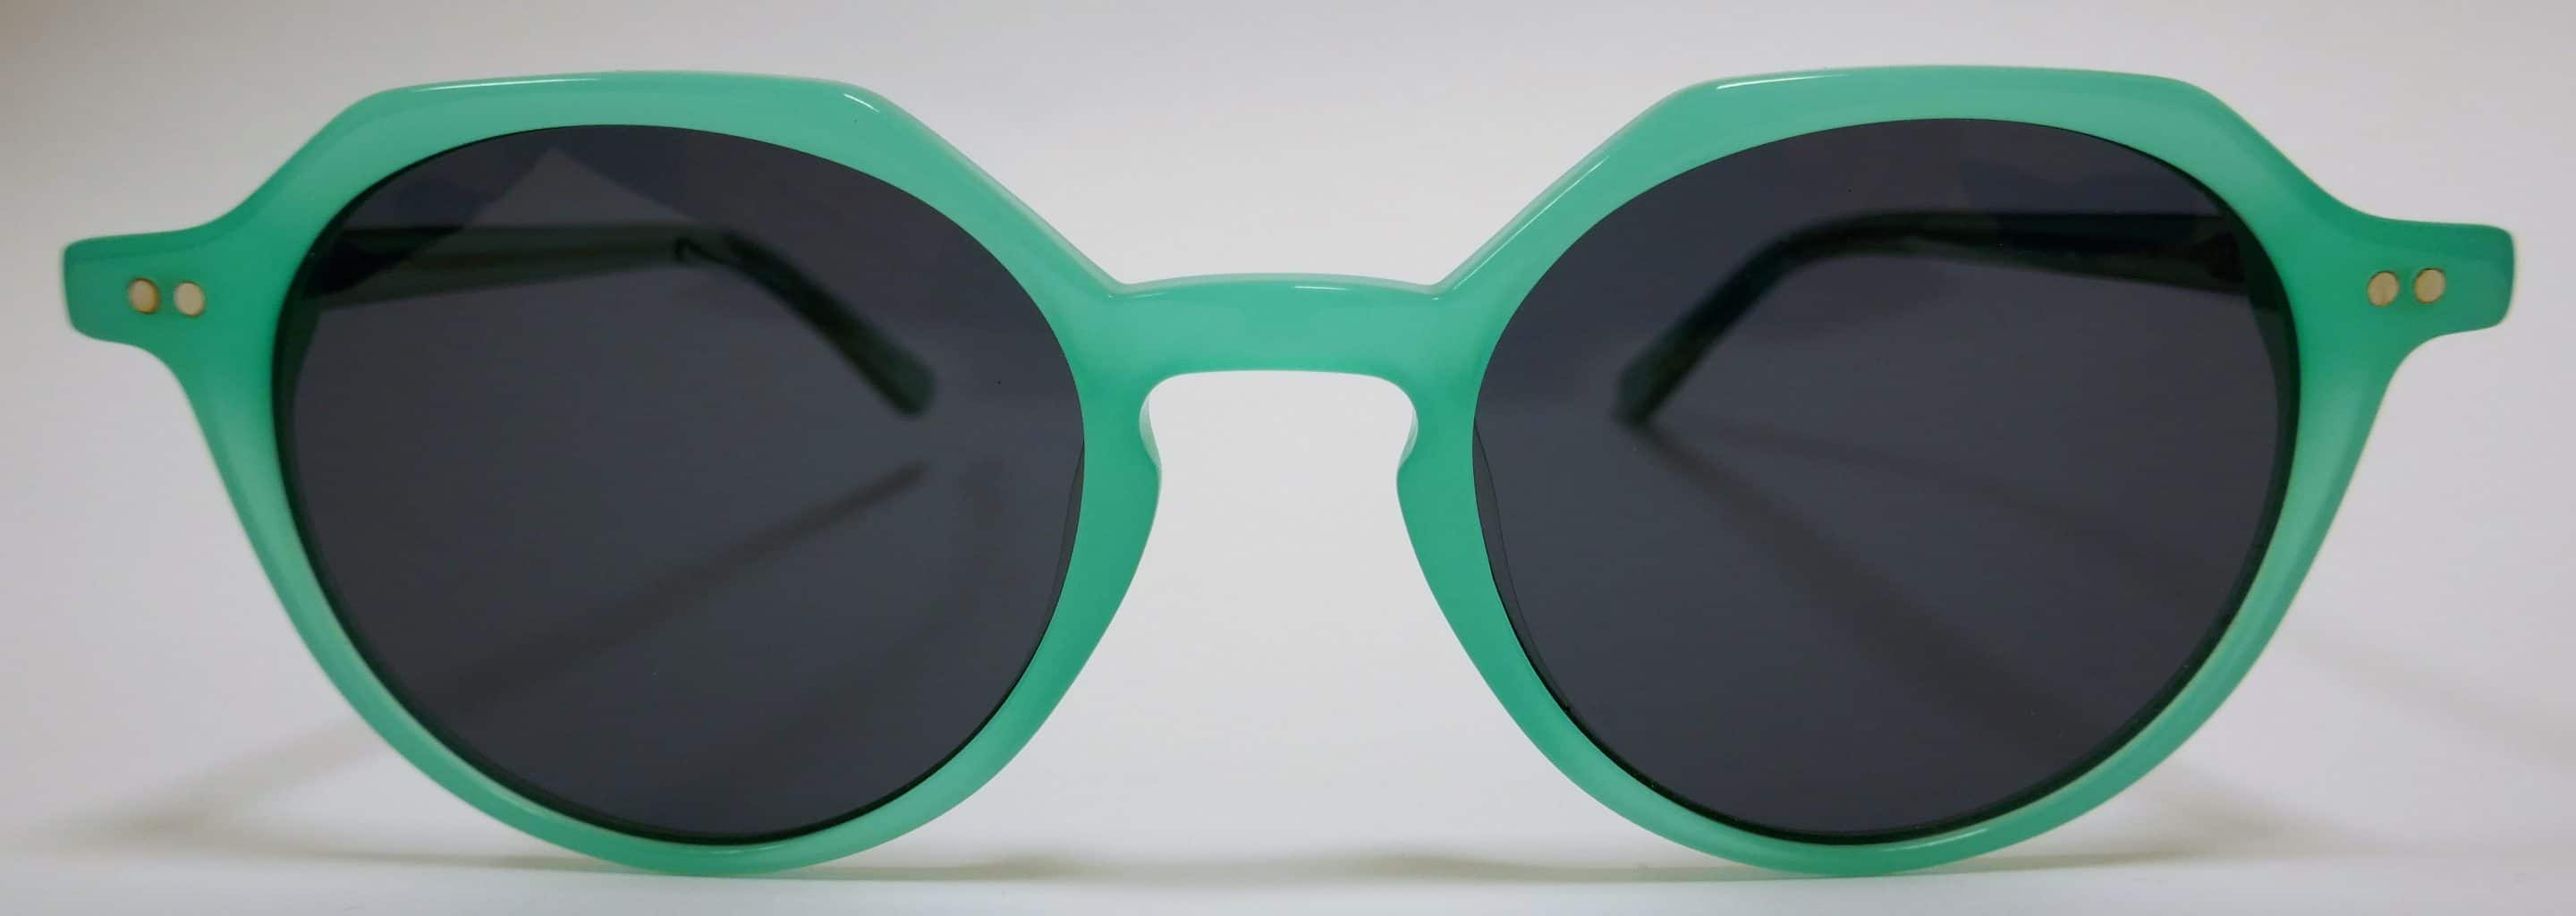 lunettes sky eyes auvers